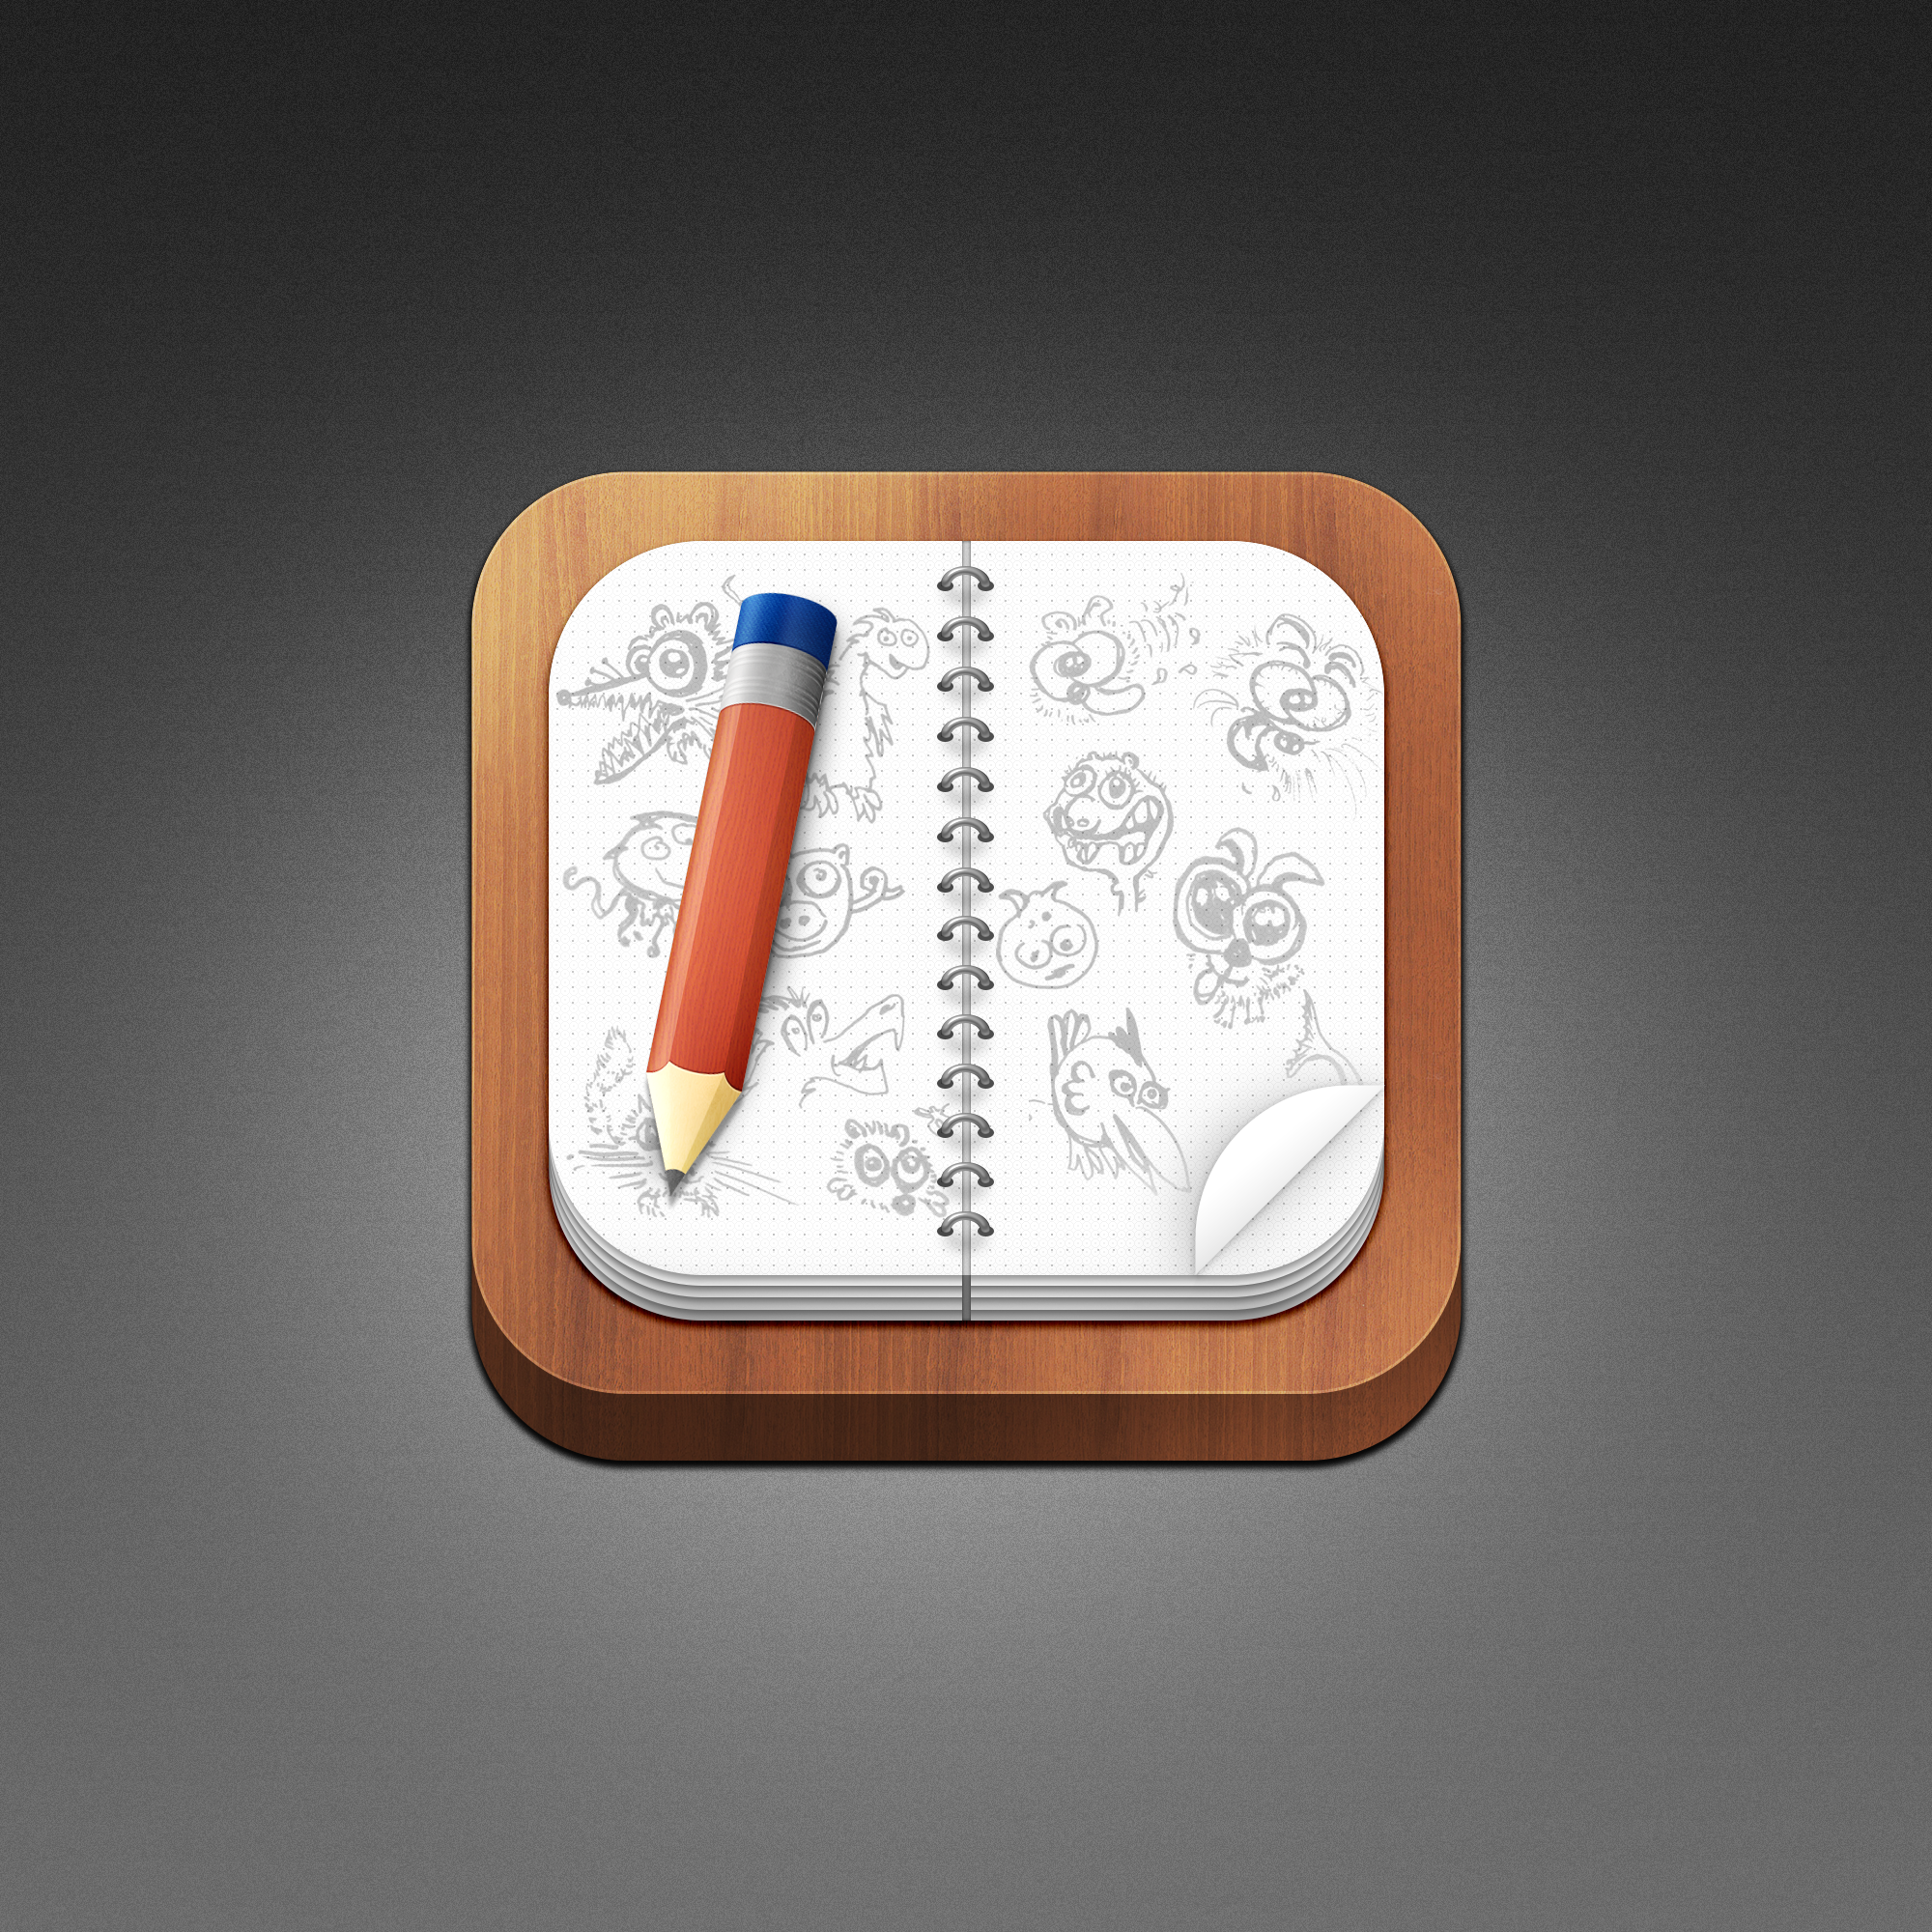 Appiconlarge (With images) App icon, App design, Ios